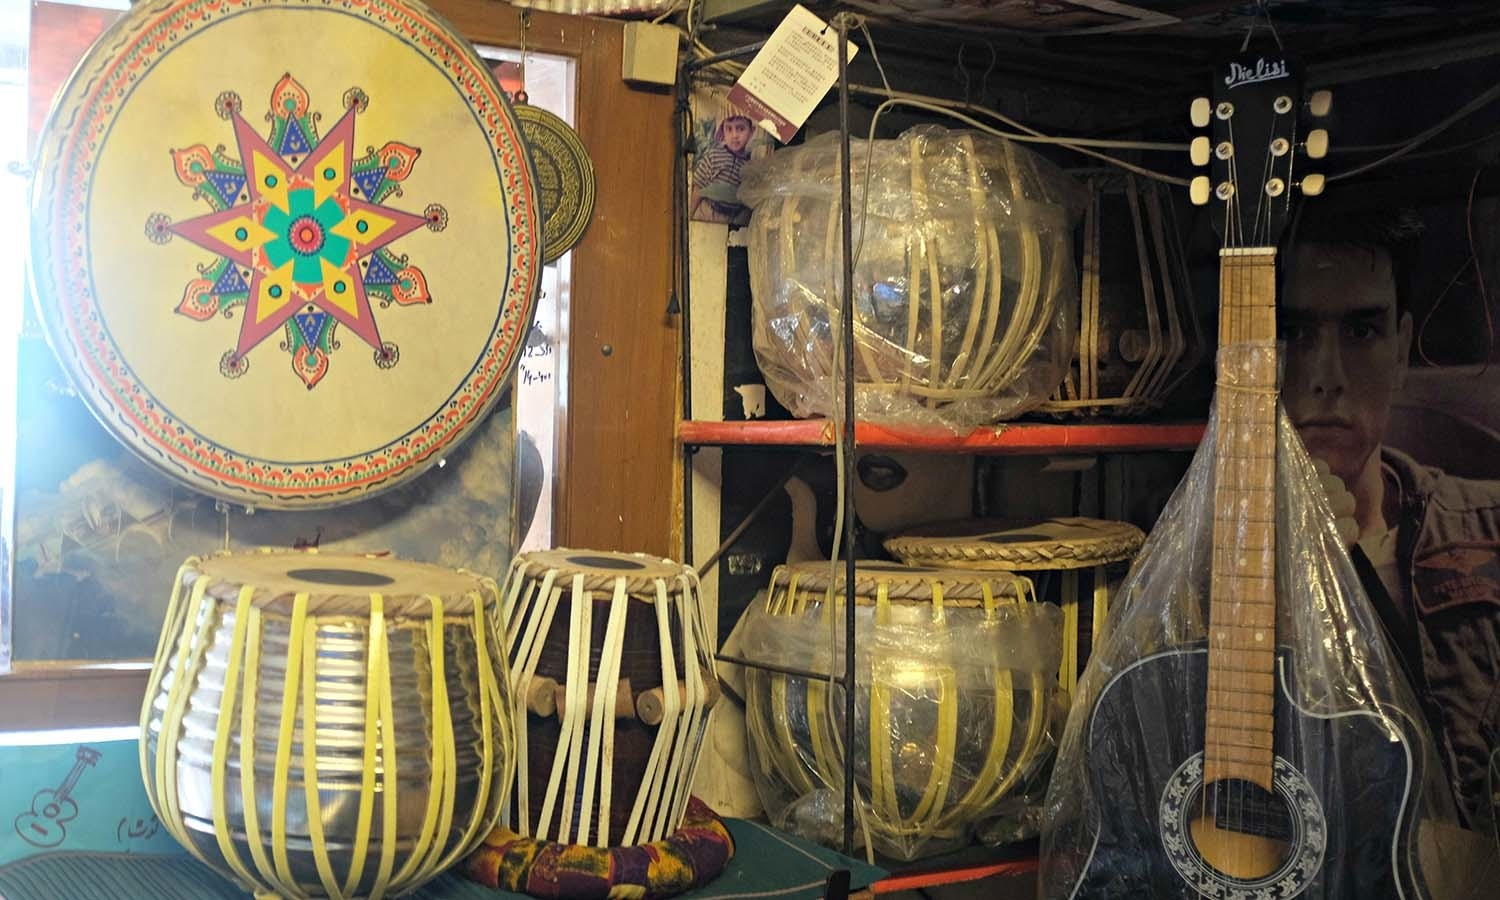 A beautiful display of decorated classical instruments at a music shop in Karachi.